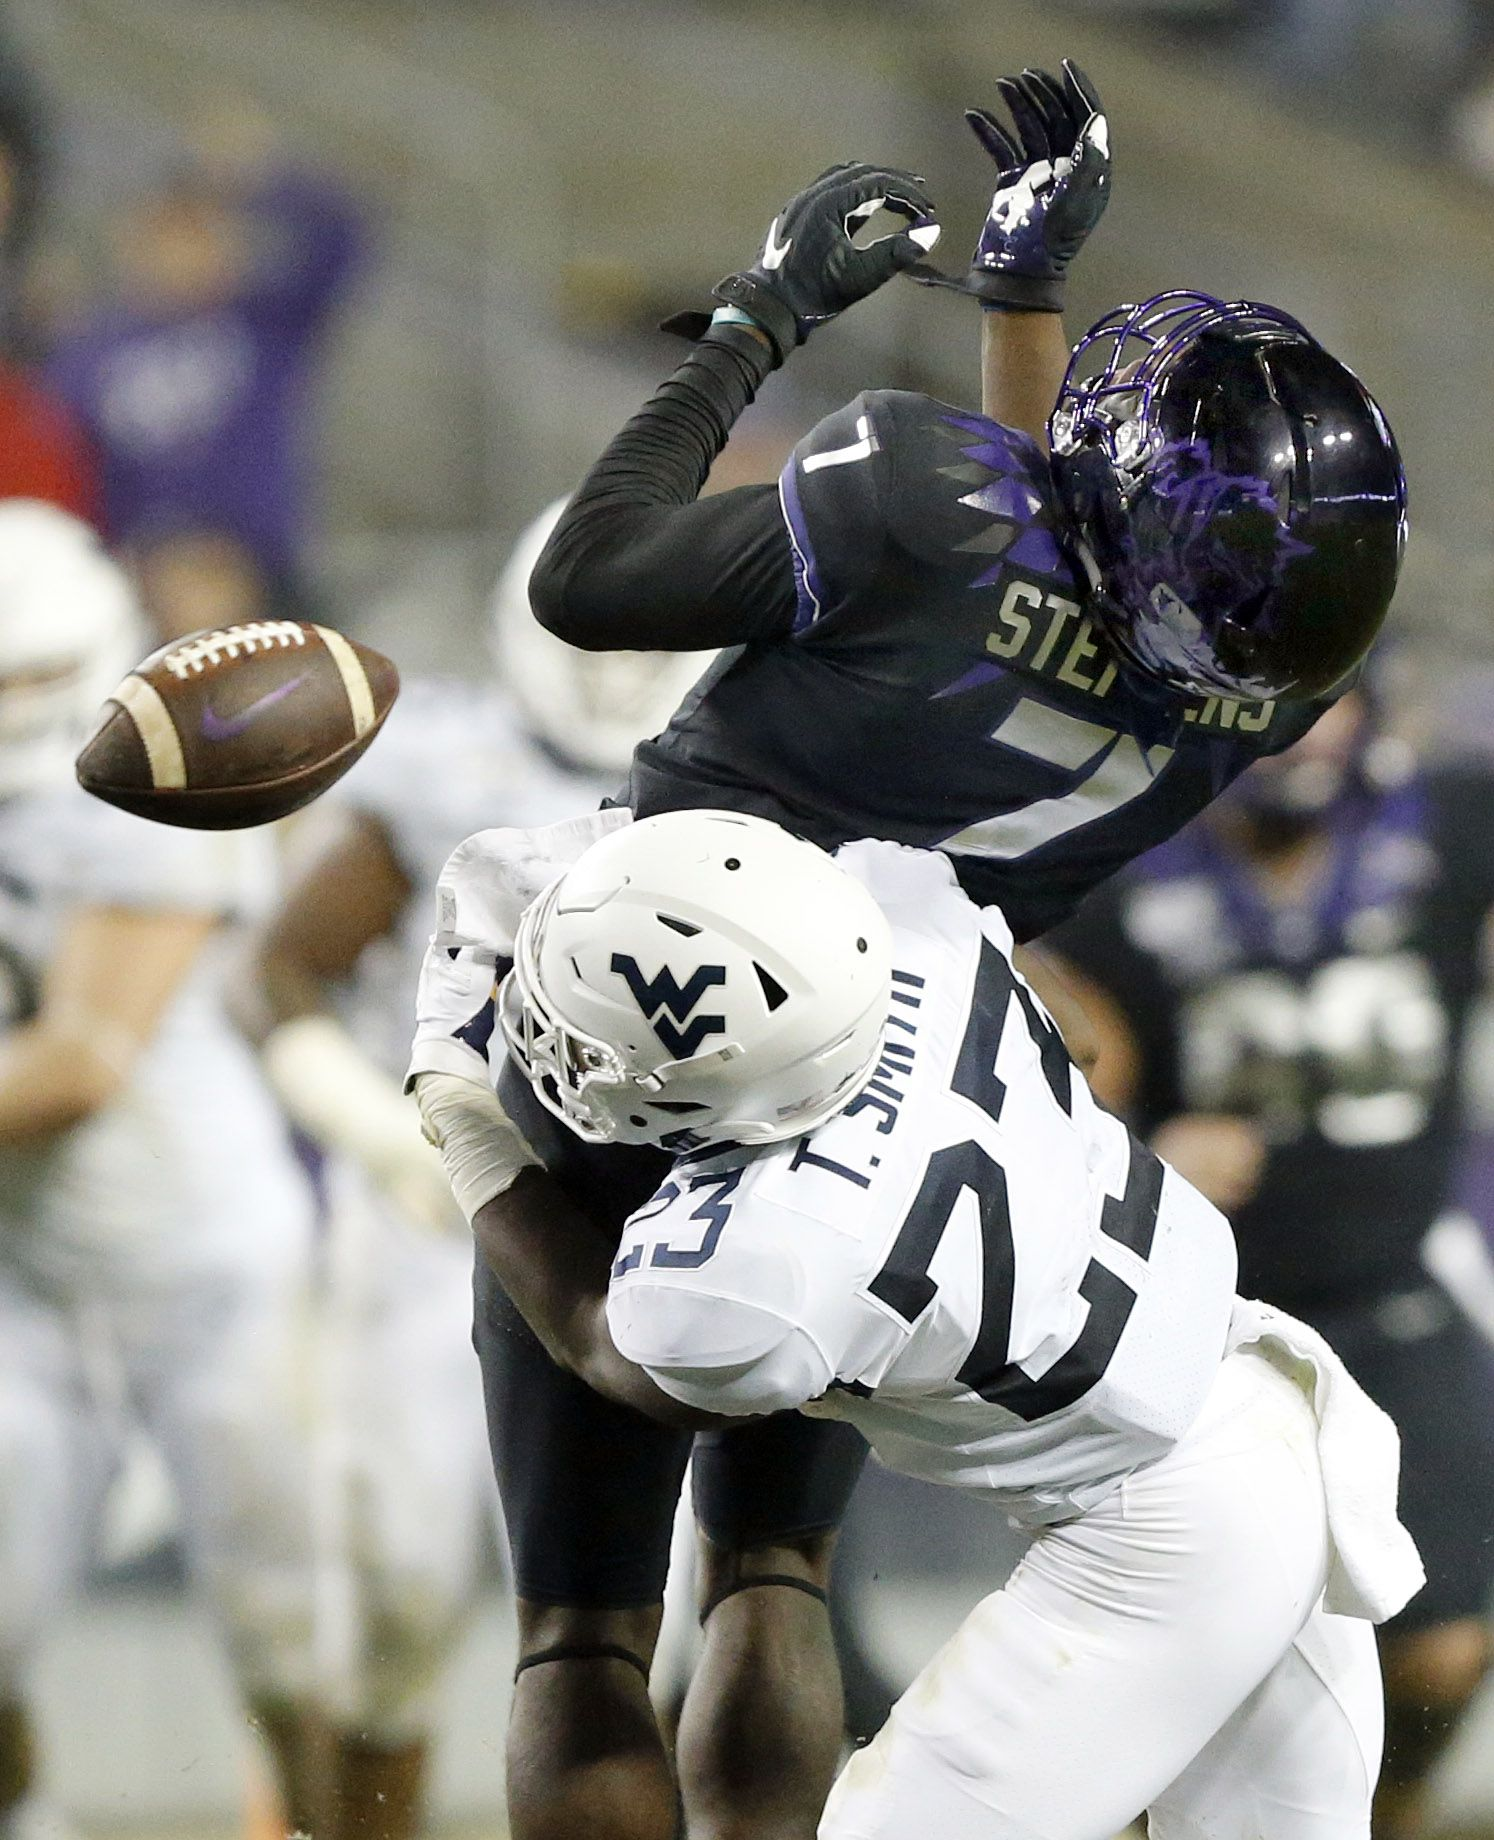 West Virginia Mountaineers safety Tykee Smith (23) puts a big hit on TCU Horned Frogs wide receiver John Stephens Jr. (7) forcing the fourth quarter incompletion at Amon G. Carter Stadium in Fort Worth, Friday, November 29, 2019. The Horned Frogs lost, 20-17.